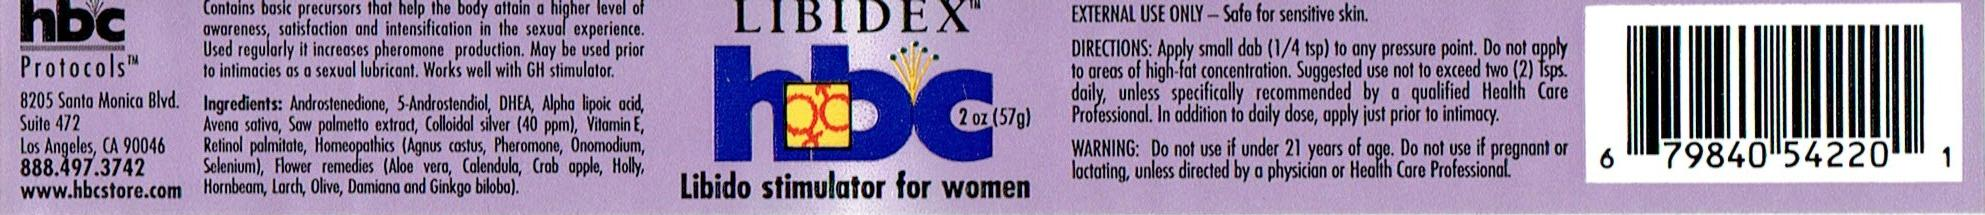 LIBIDEX TRANSDERMAL CREAM